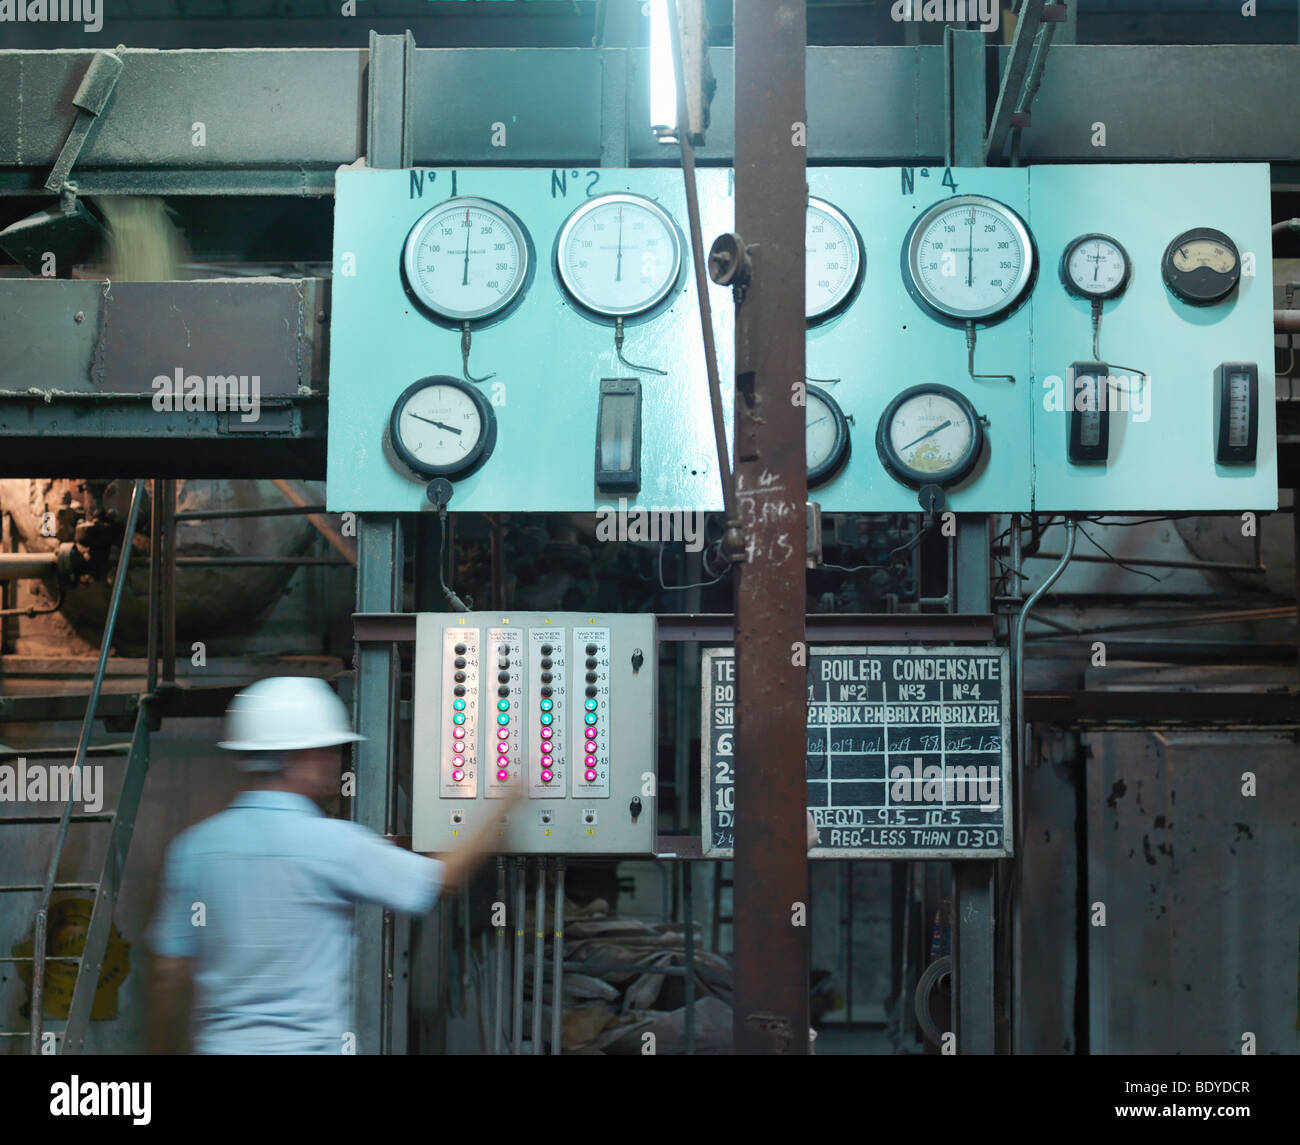 Supervisor In Sugar Cane Factory - Stock Image